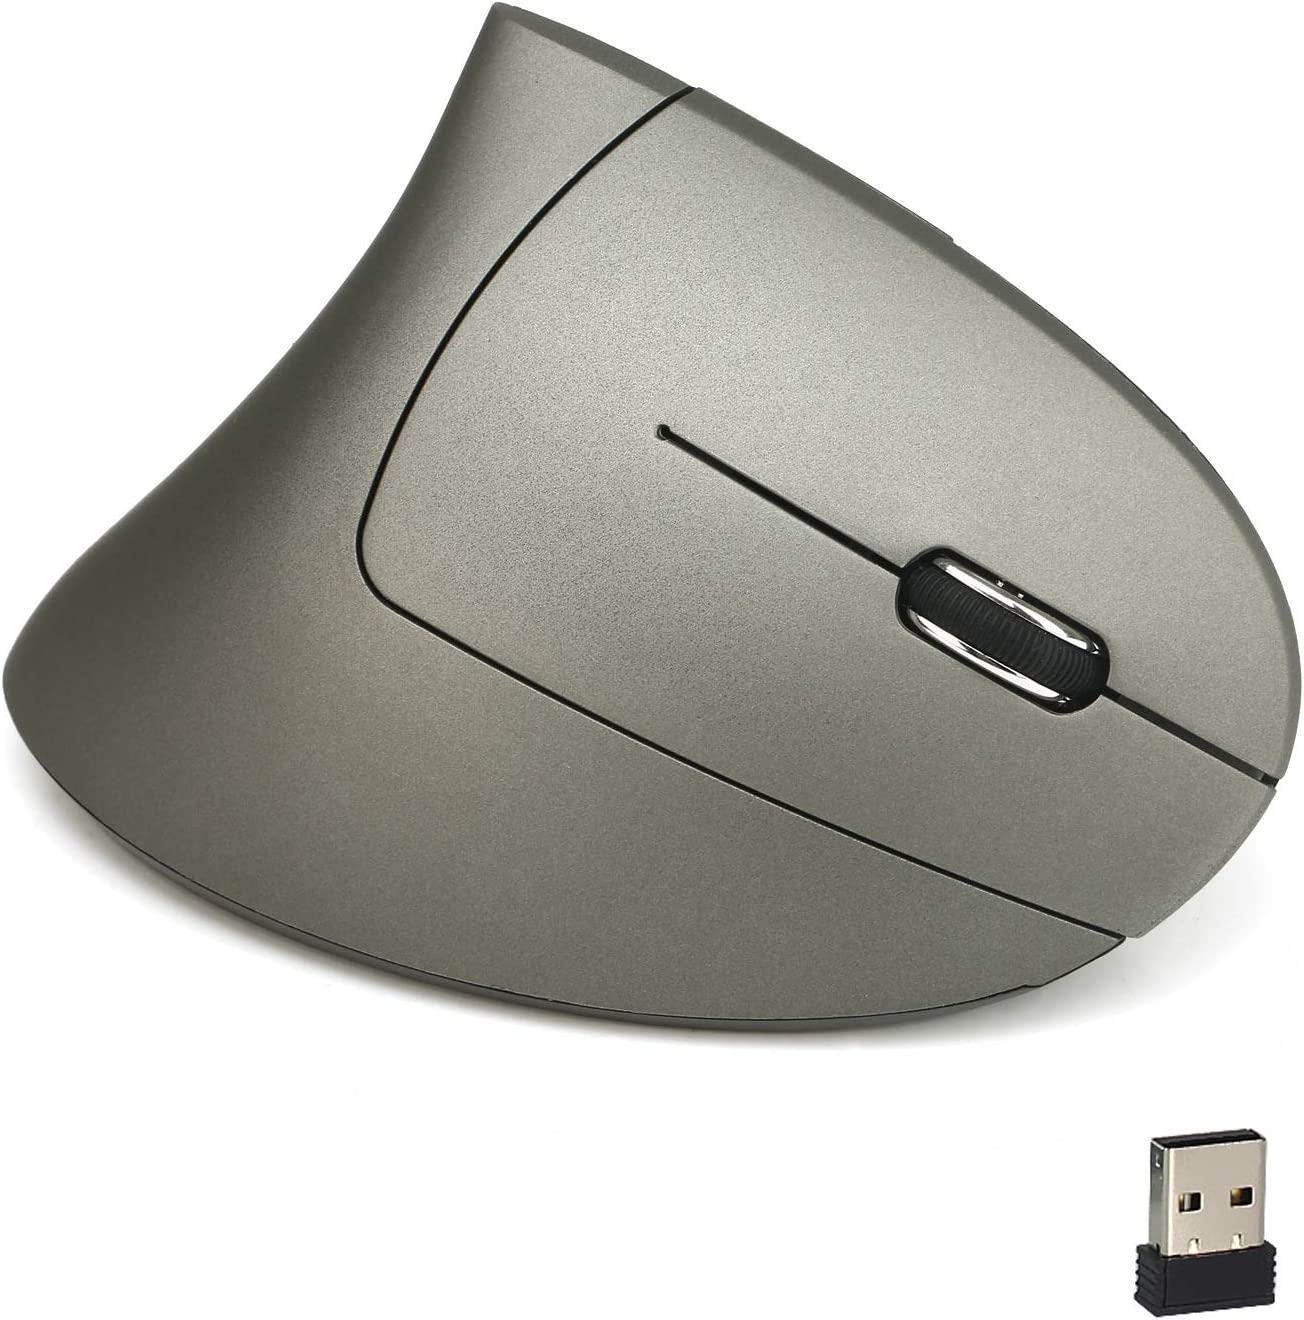 Adjustable Sensitivity 800//1600// 2400DPI,Recharge,Compatible with Mac,4.92x3.22x2.55 inches Grey 2.4G Vertical Ergonomic Mouse Wireless USB Optical Mouse Handshake Mouse with USB Receiver